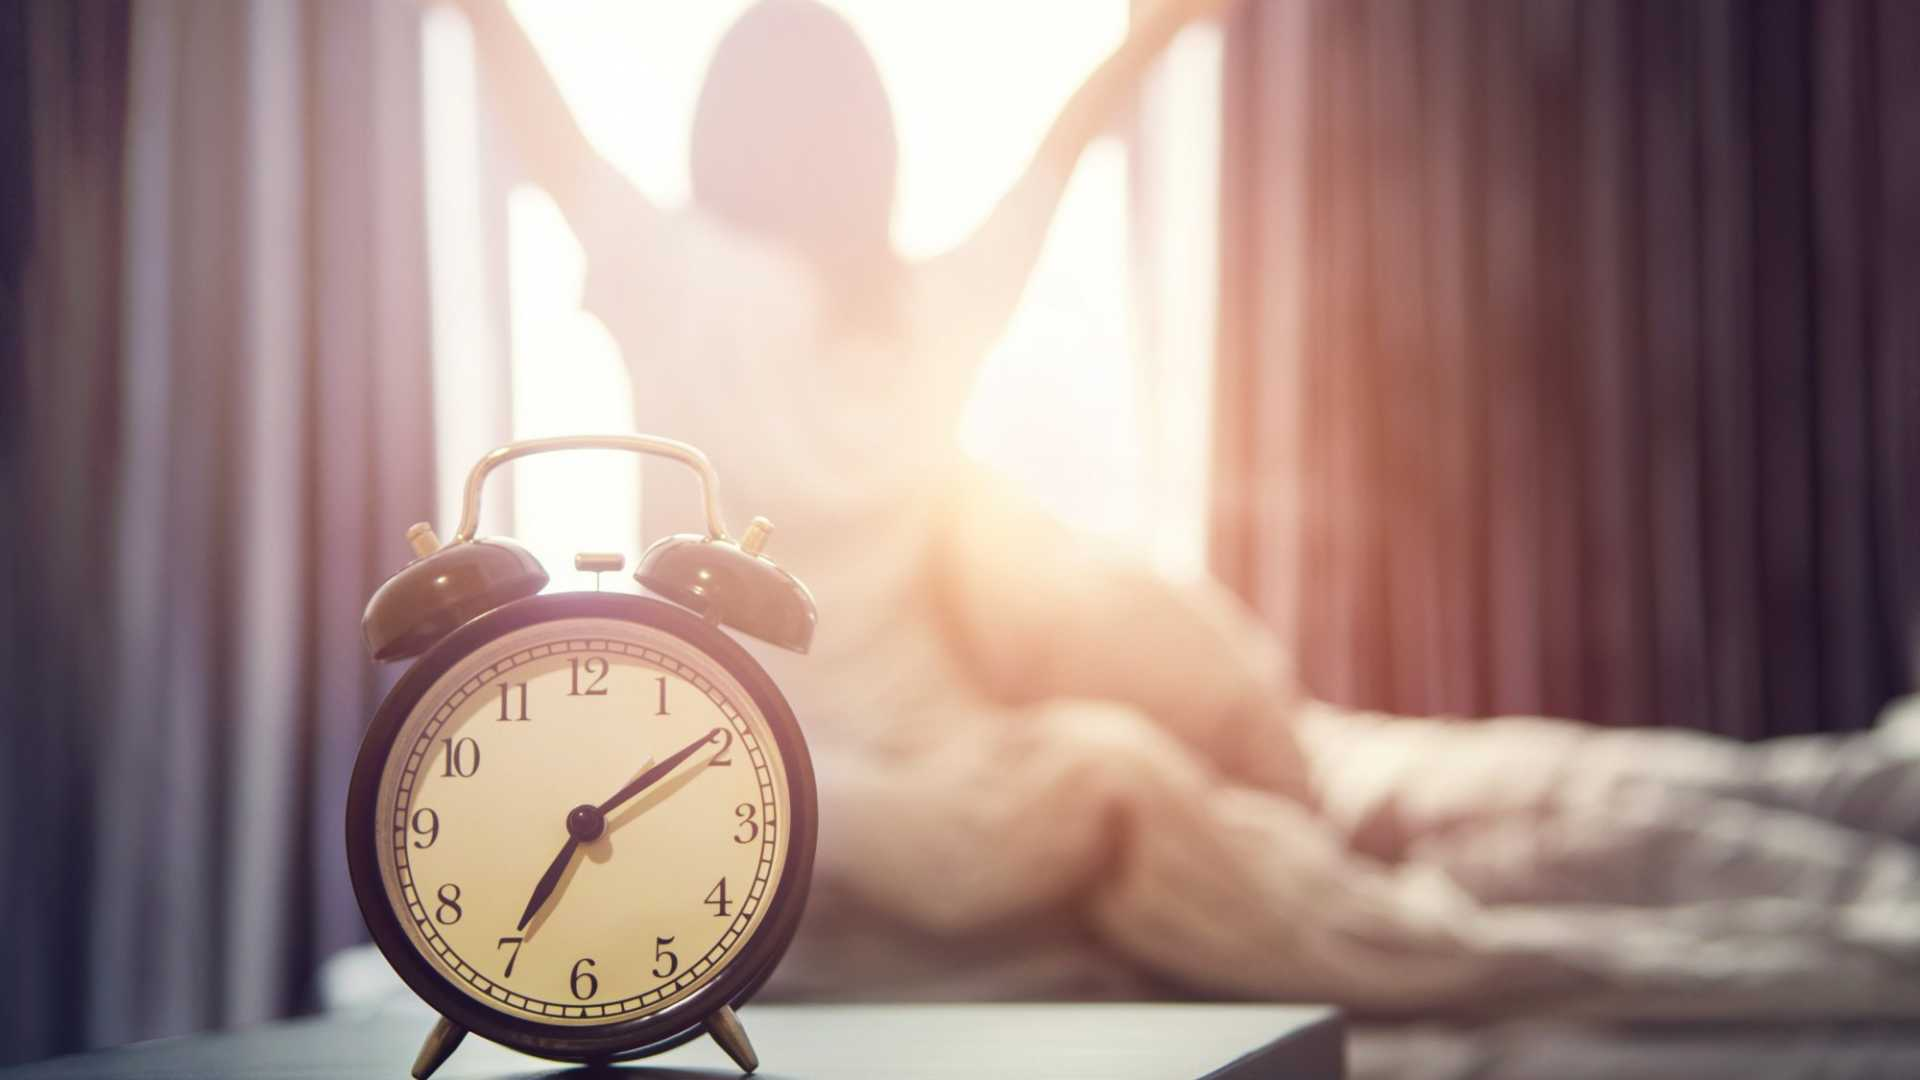 Most Productive Morning Ever: How to Set the Stage for a Great Tomorrow